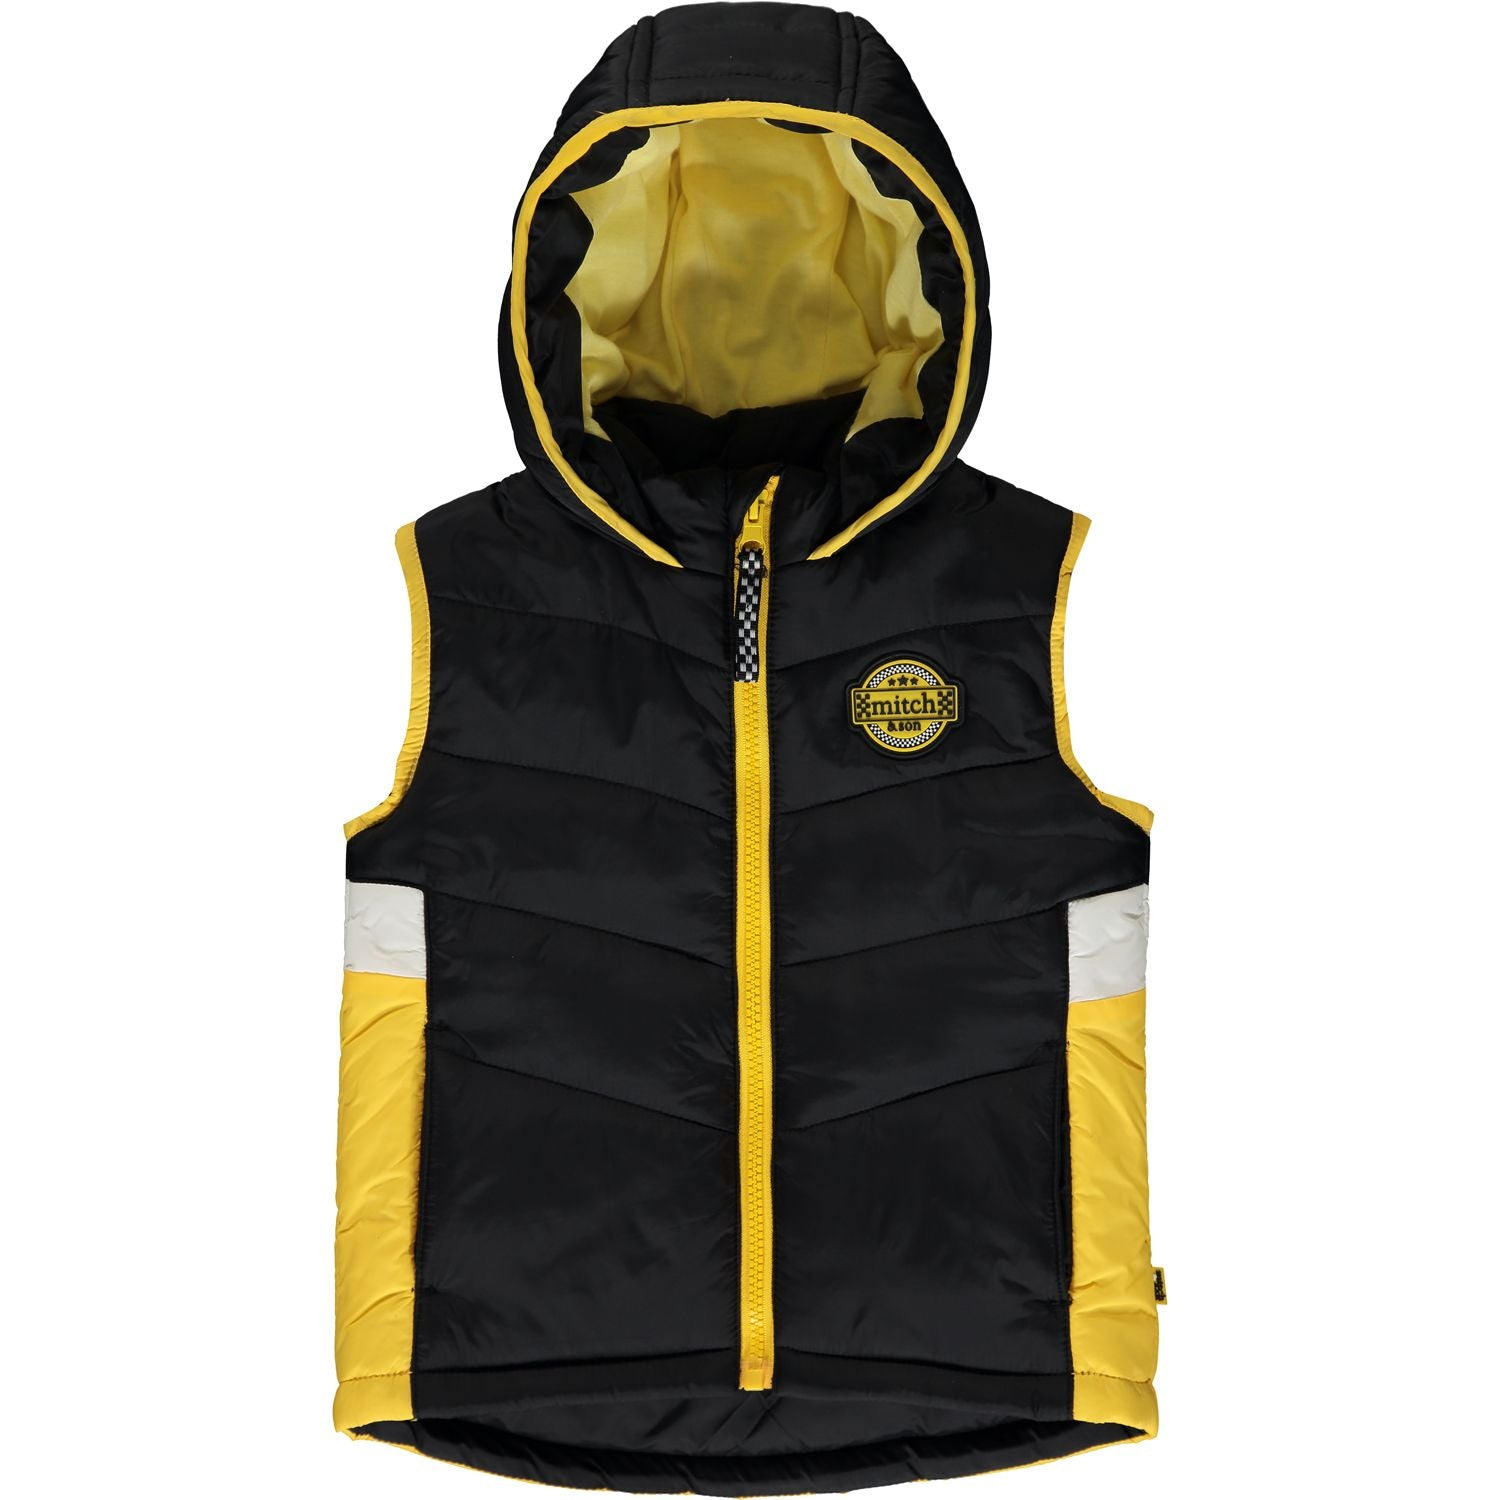 Mitch & Son padded gilet